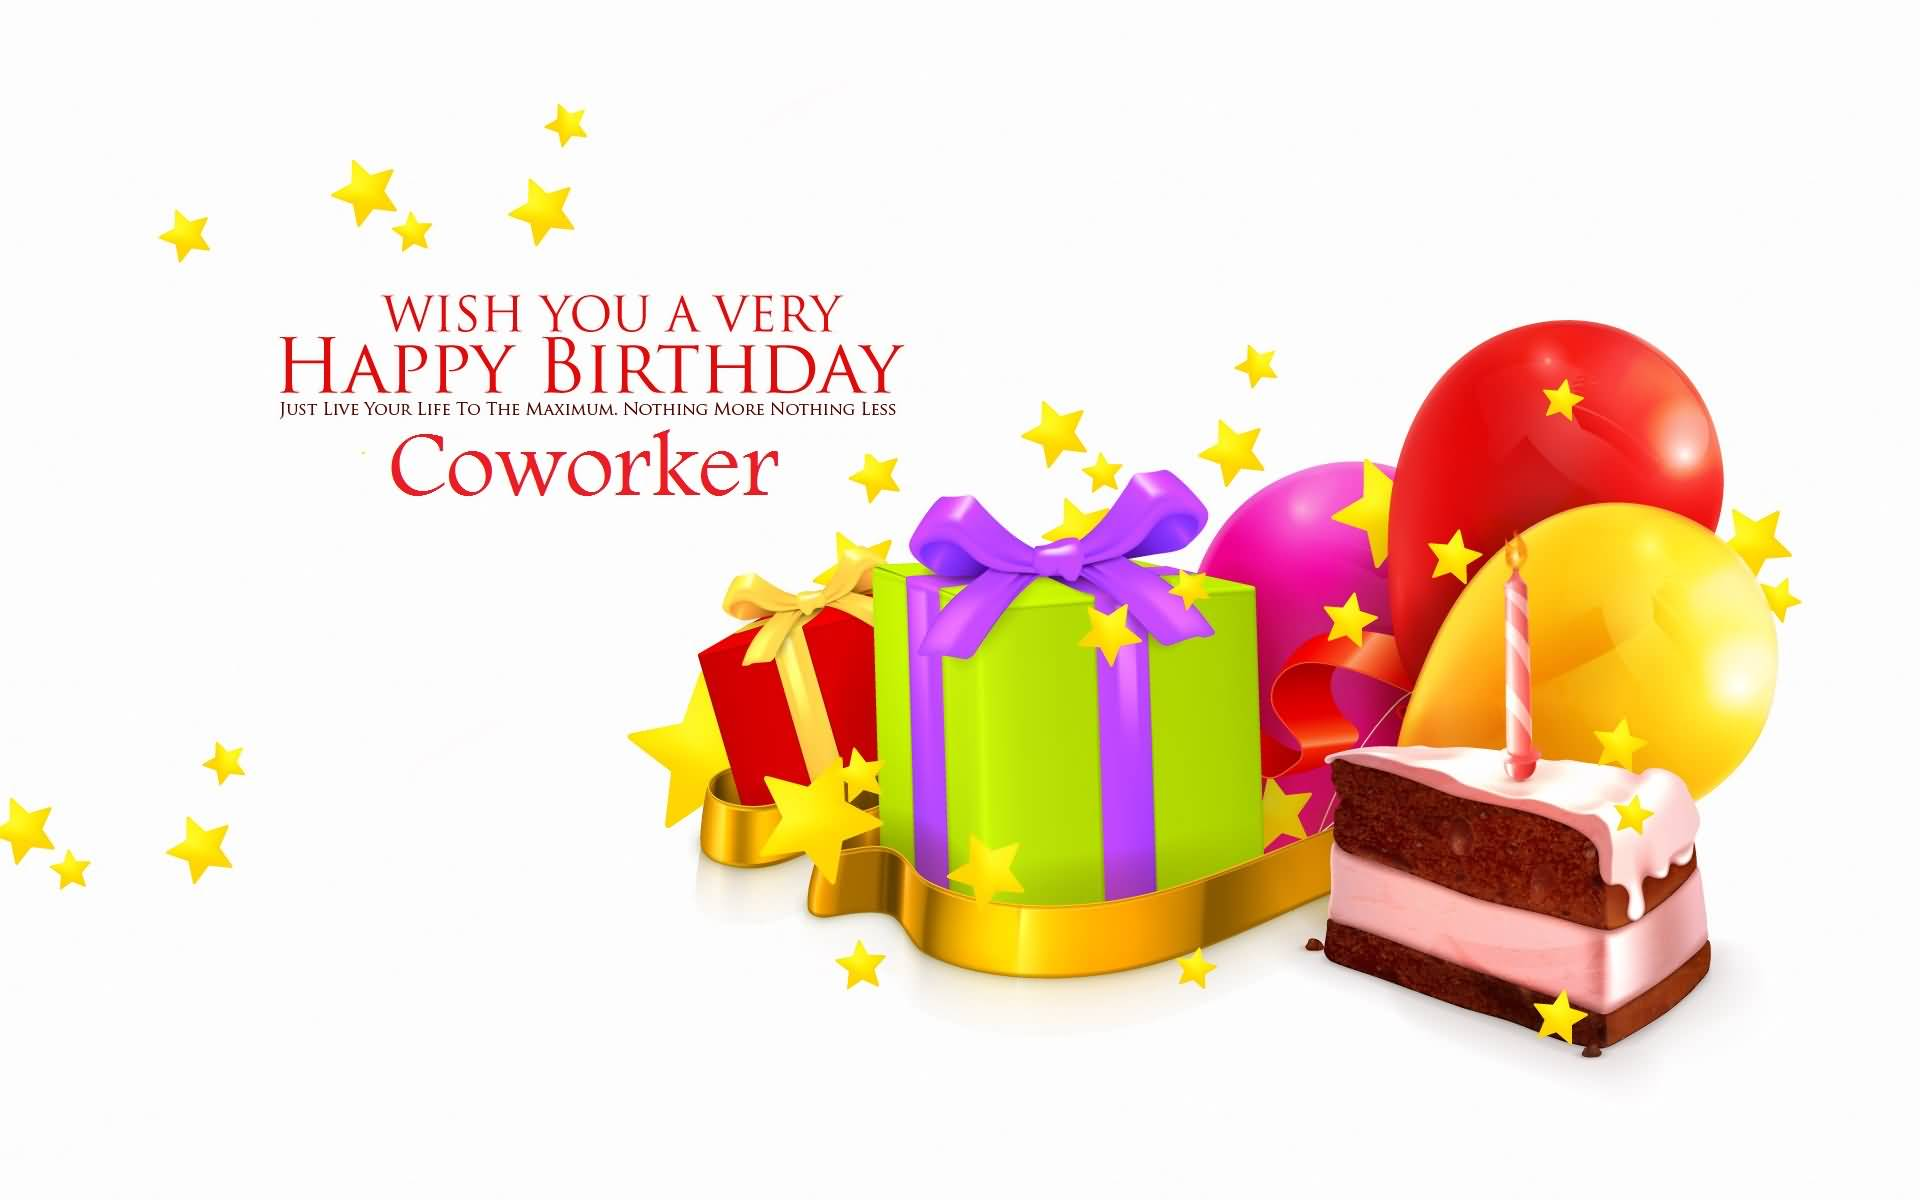 Wish You A Very Happy Birthday Coworker